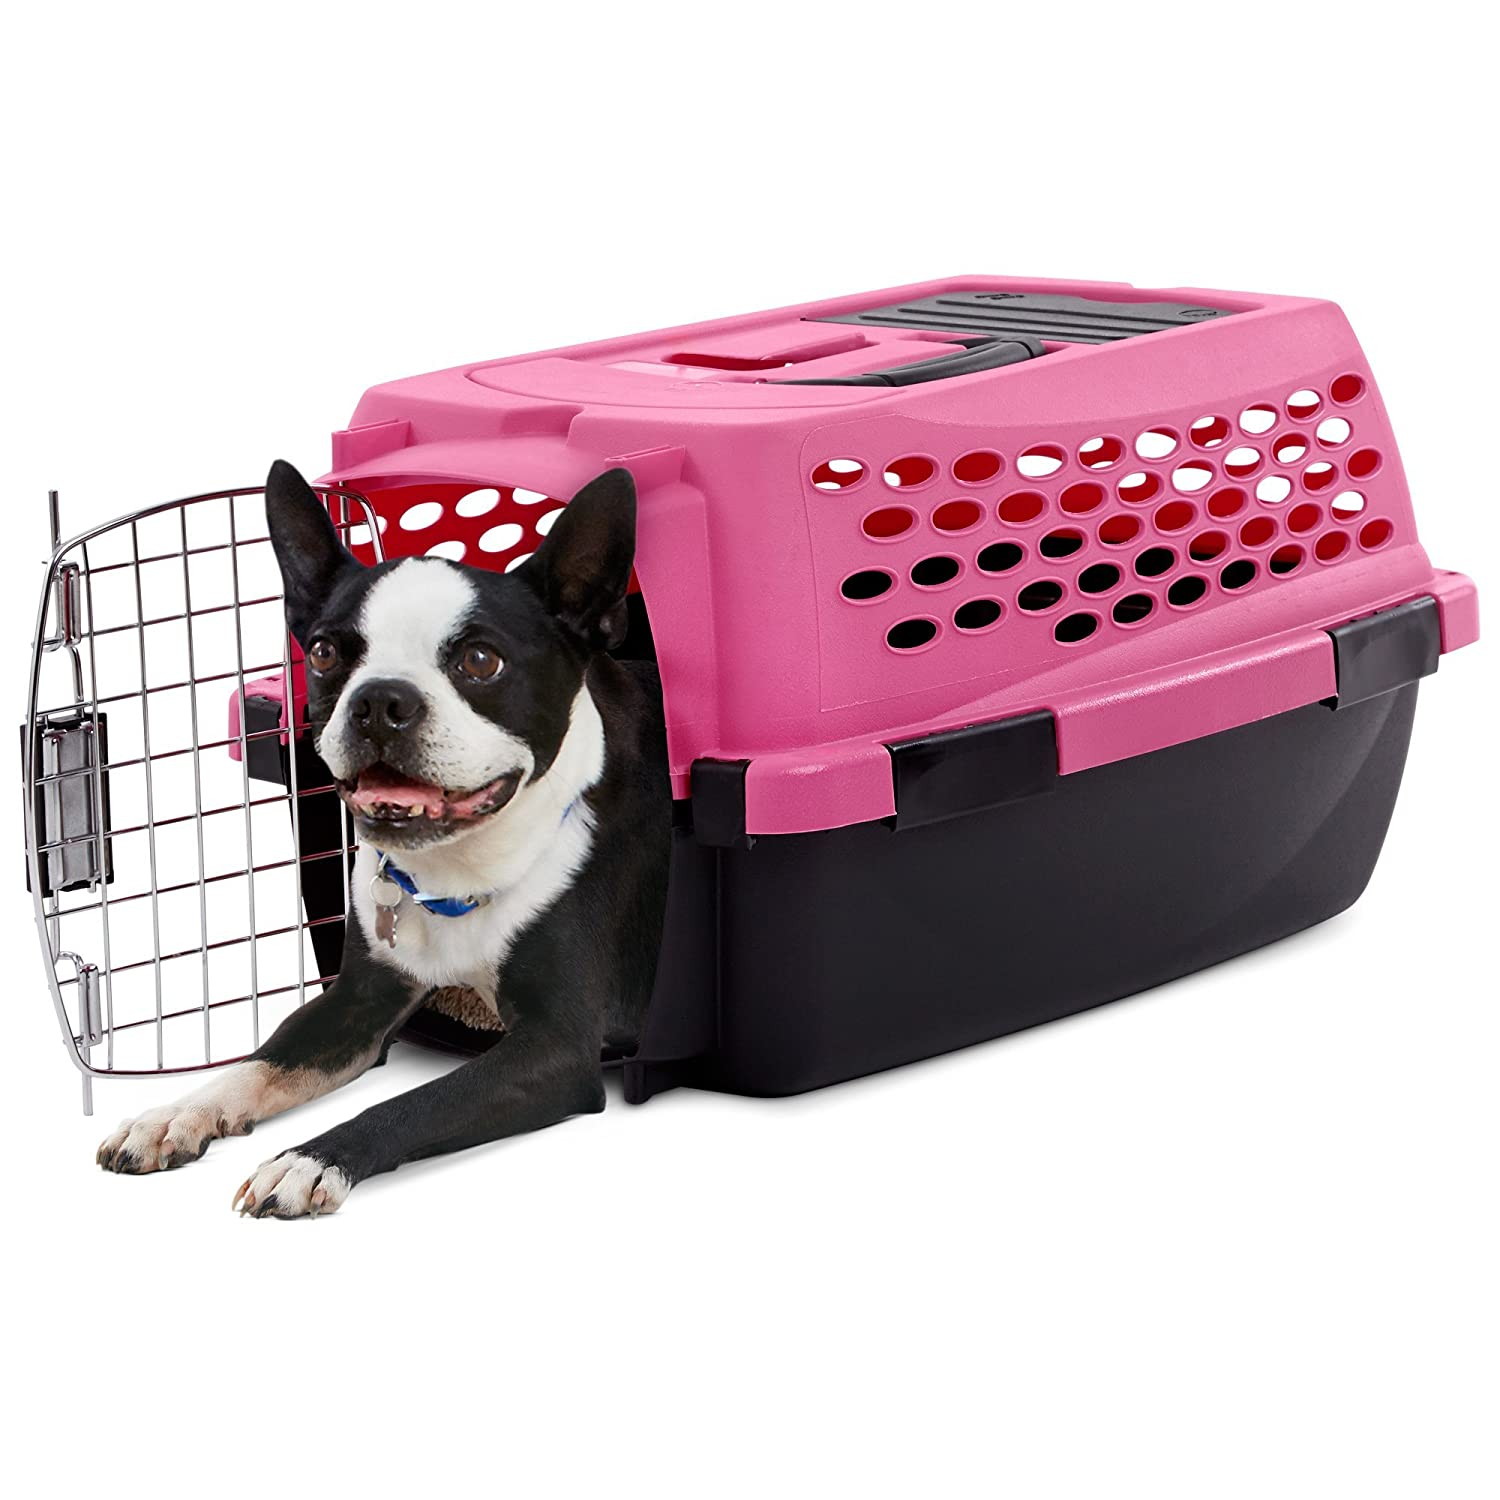 You Me Relaxing Refuge Dog Kennel Pink